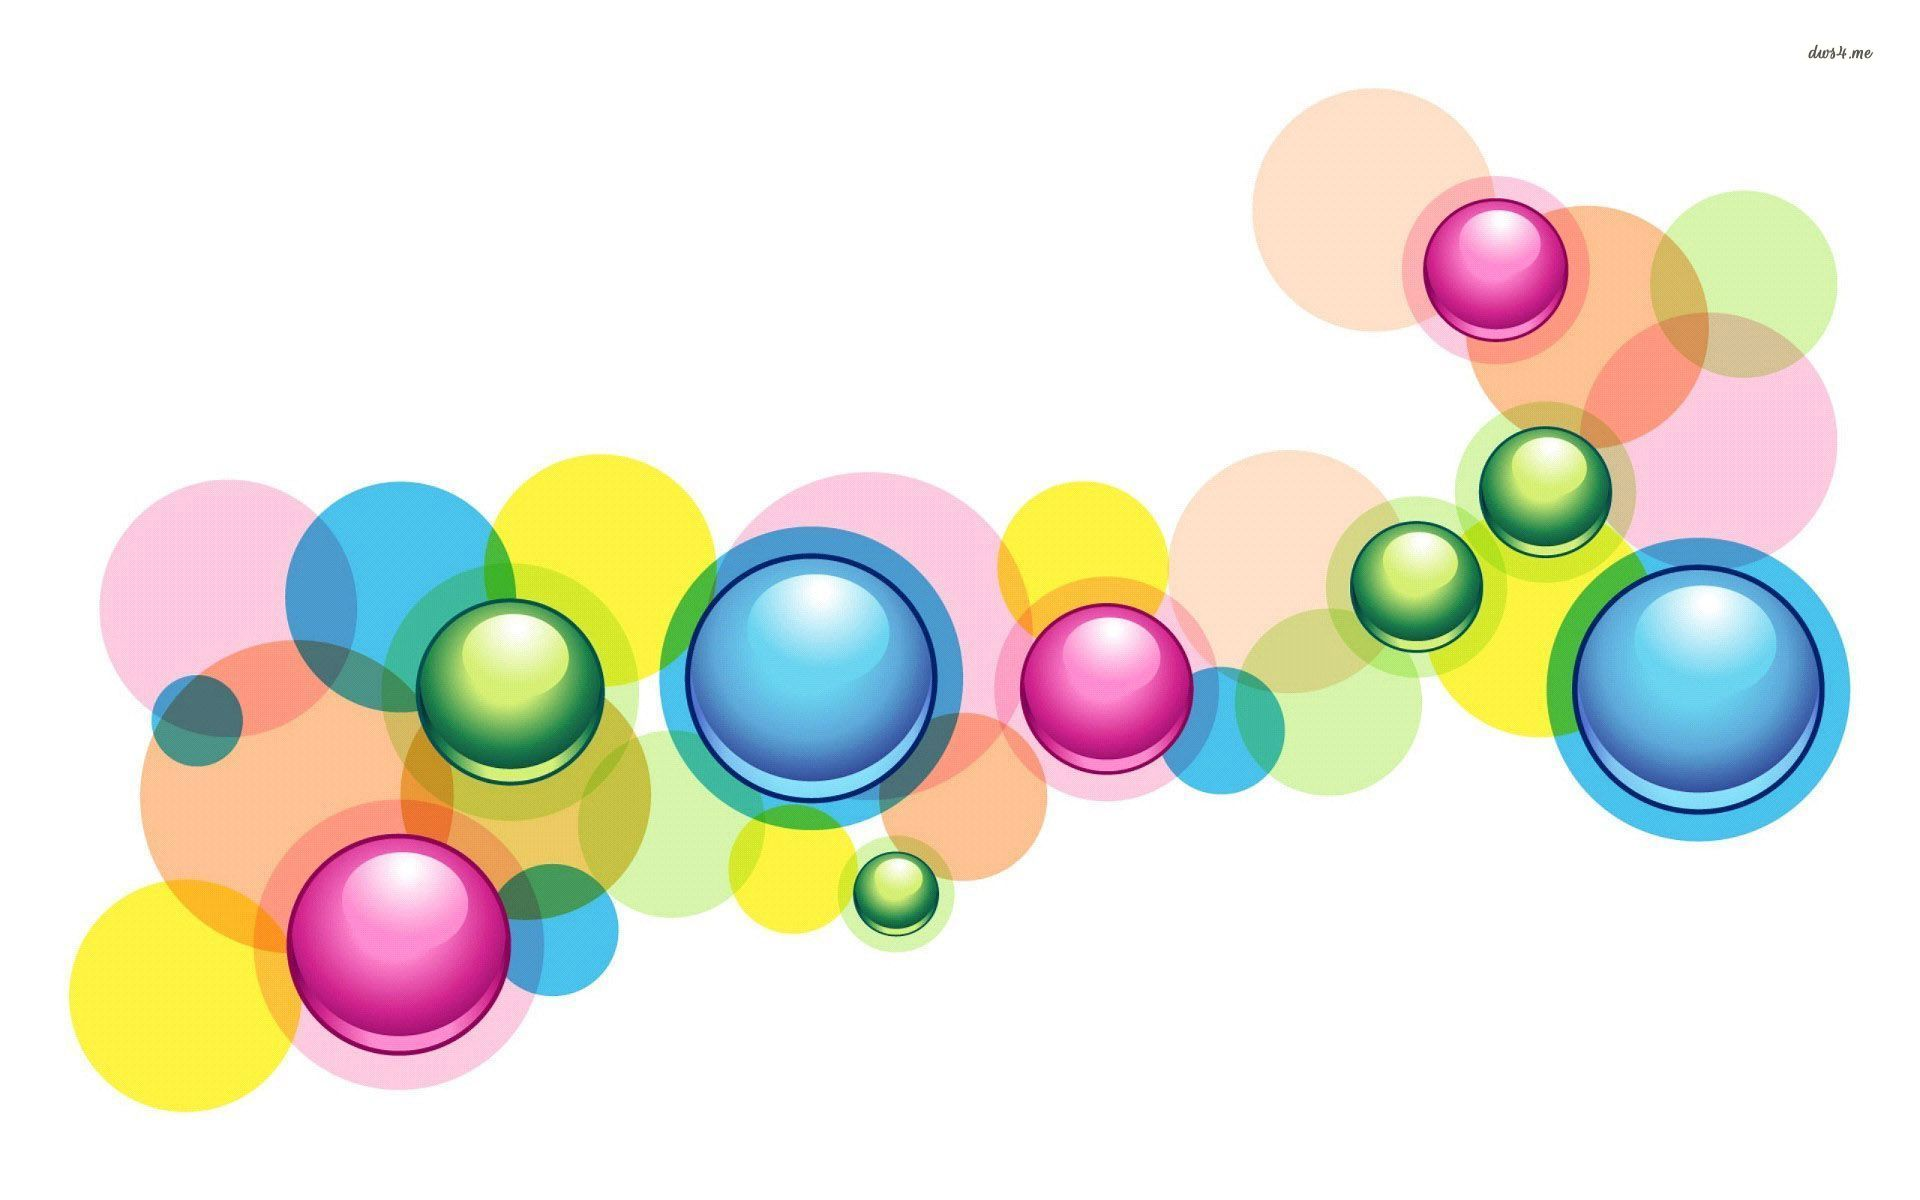 Colorful Circles wallpaper - Abstract wallpapers - #6985